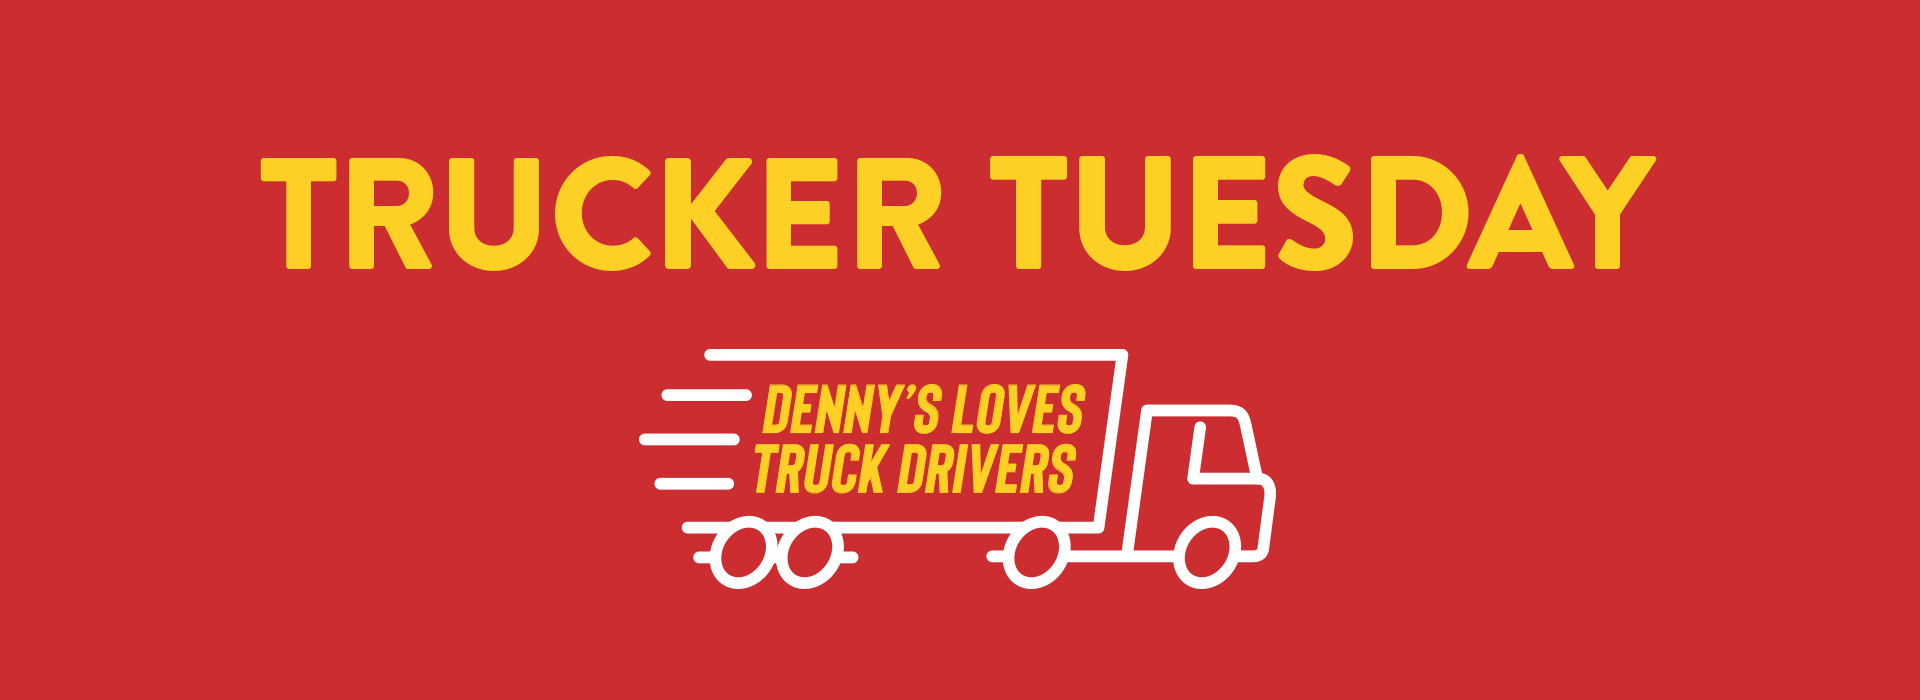 Trucker Tuesday – May 26 Is Our Final Trucker Tuesday!